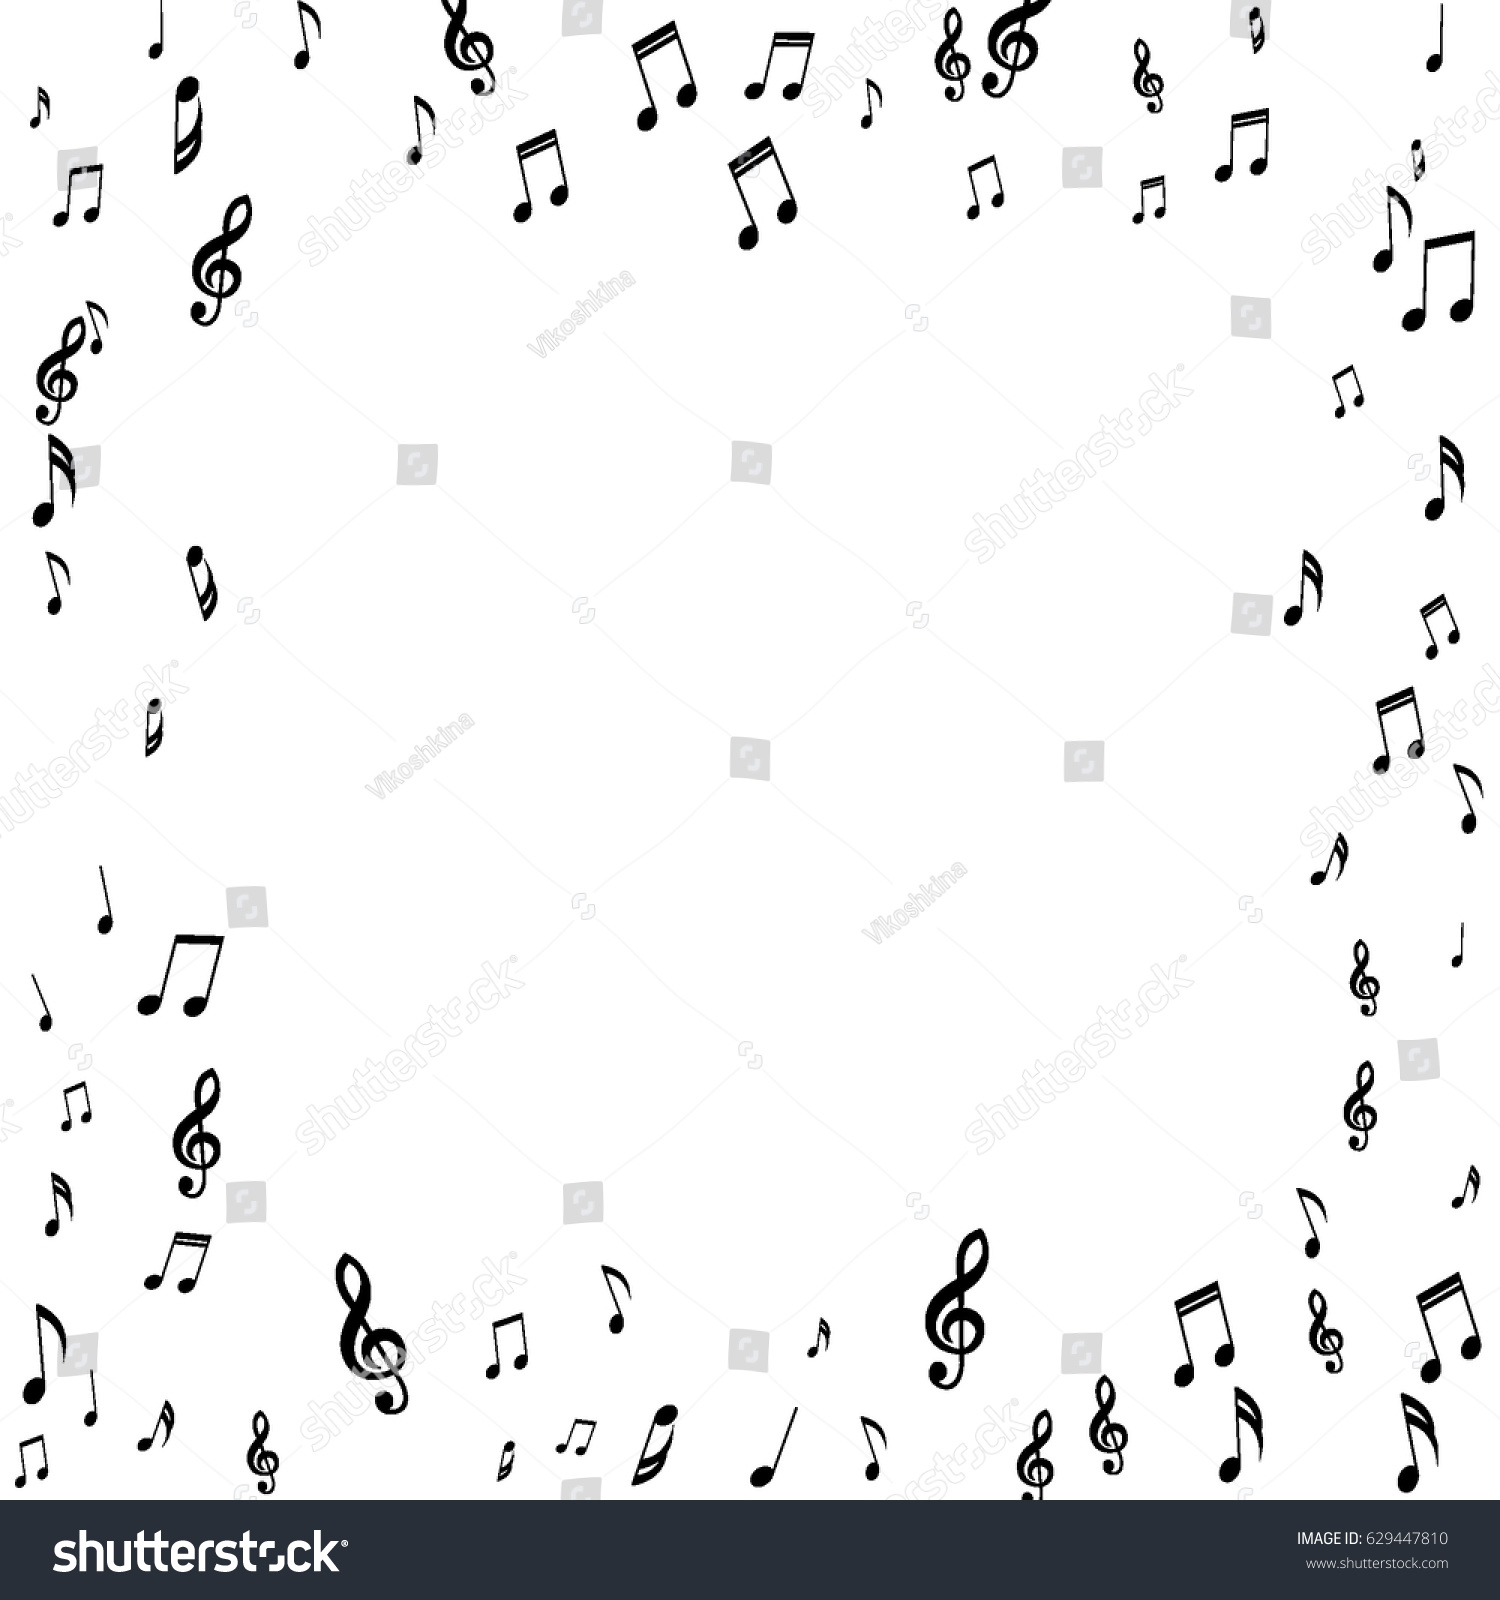 Square frame music notes treble bass stock vector 629447810 square frame of music notes treble and bass clefs black musical symbols on white background buycottarizona Choice Image